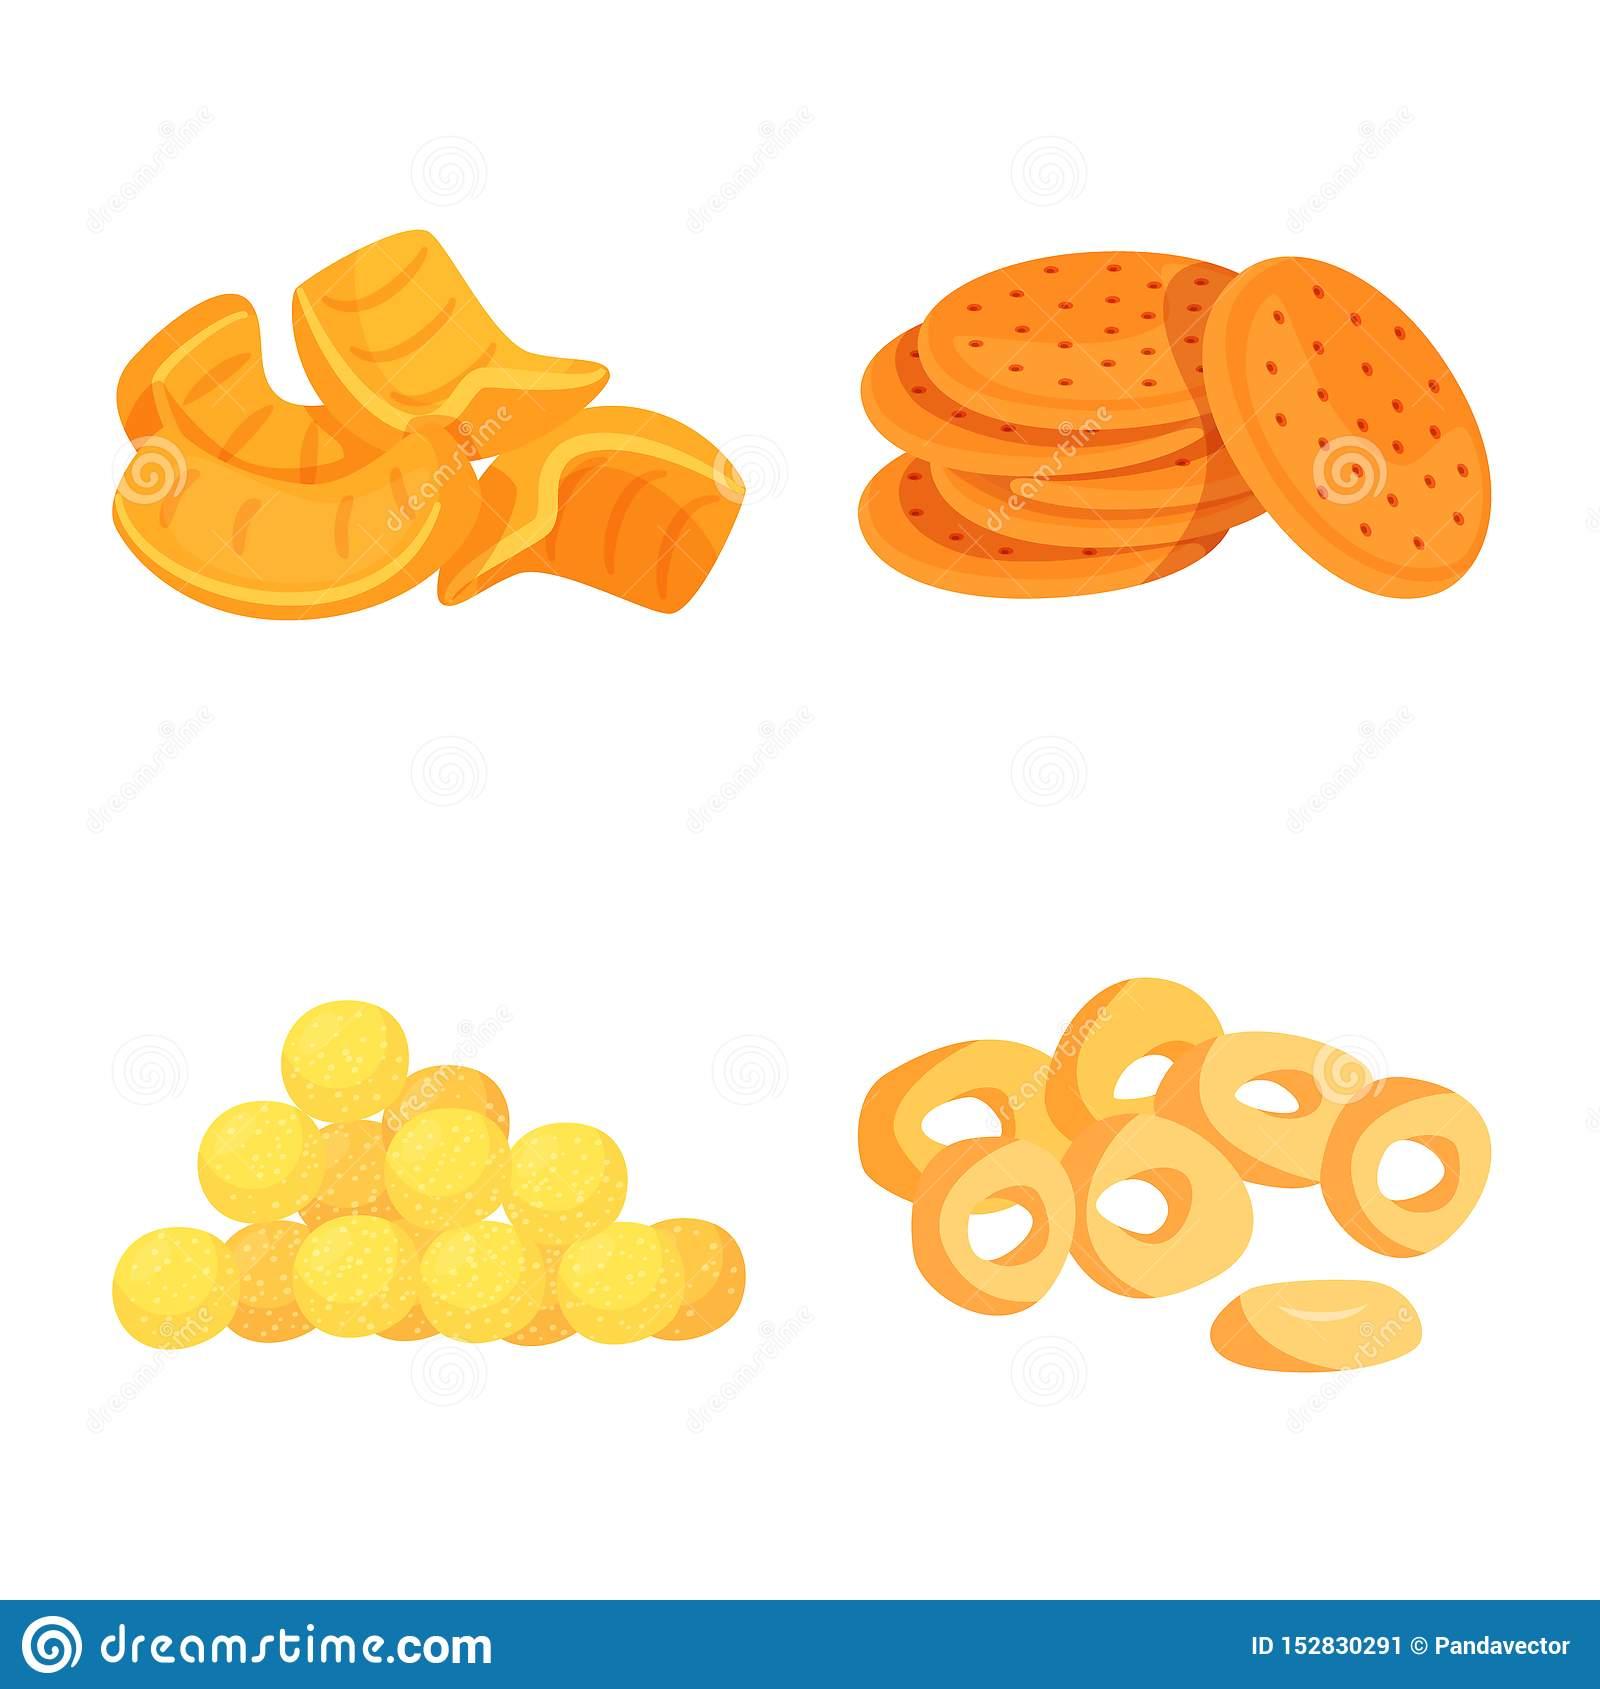 Isolated object of food and crunchy logo. Set of food and flavor stock vector illustration.